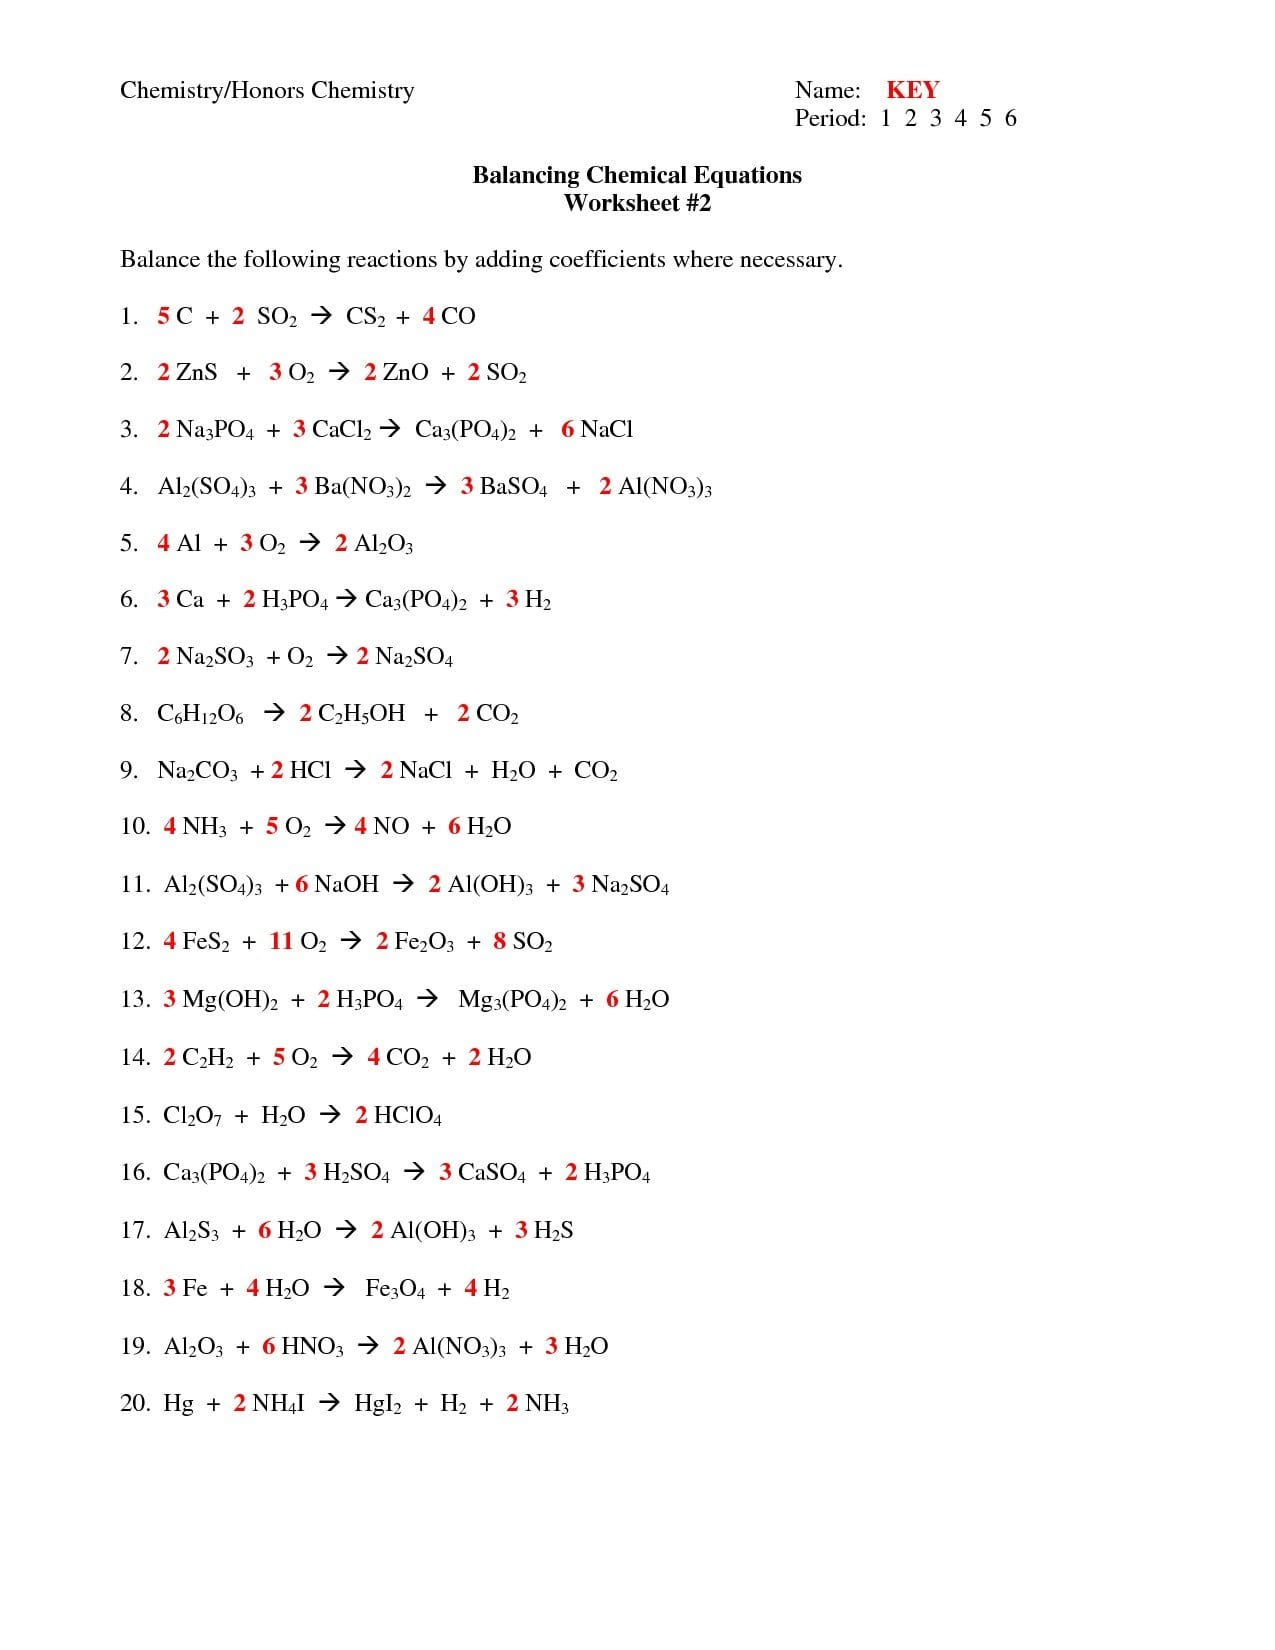 Chapter 7 Worksheet 1 Balancing Chemical Equations